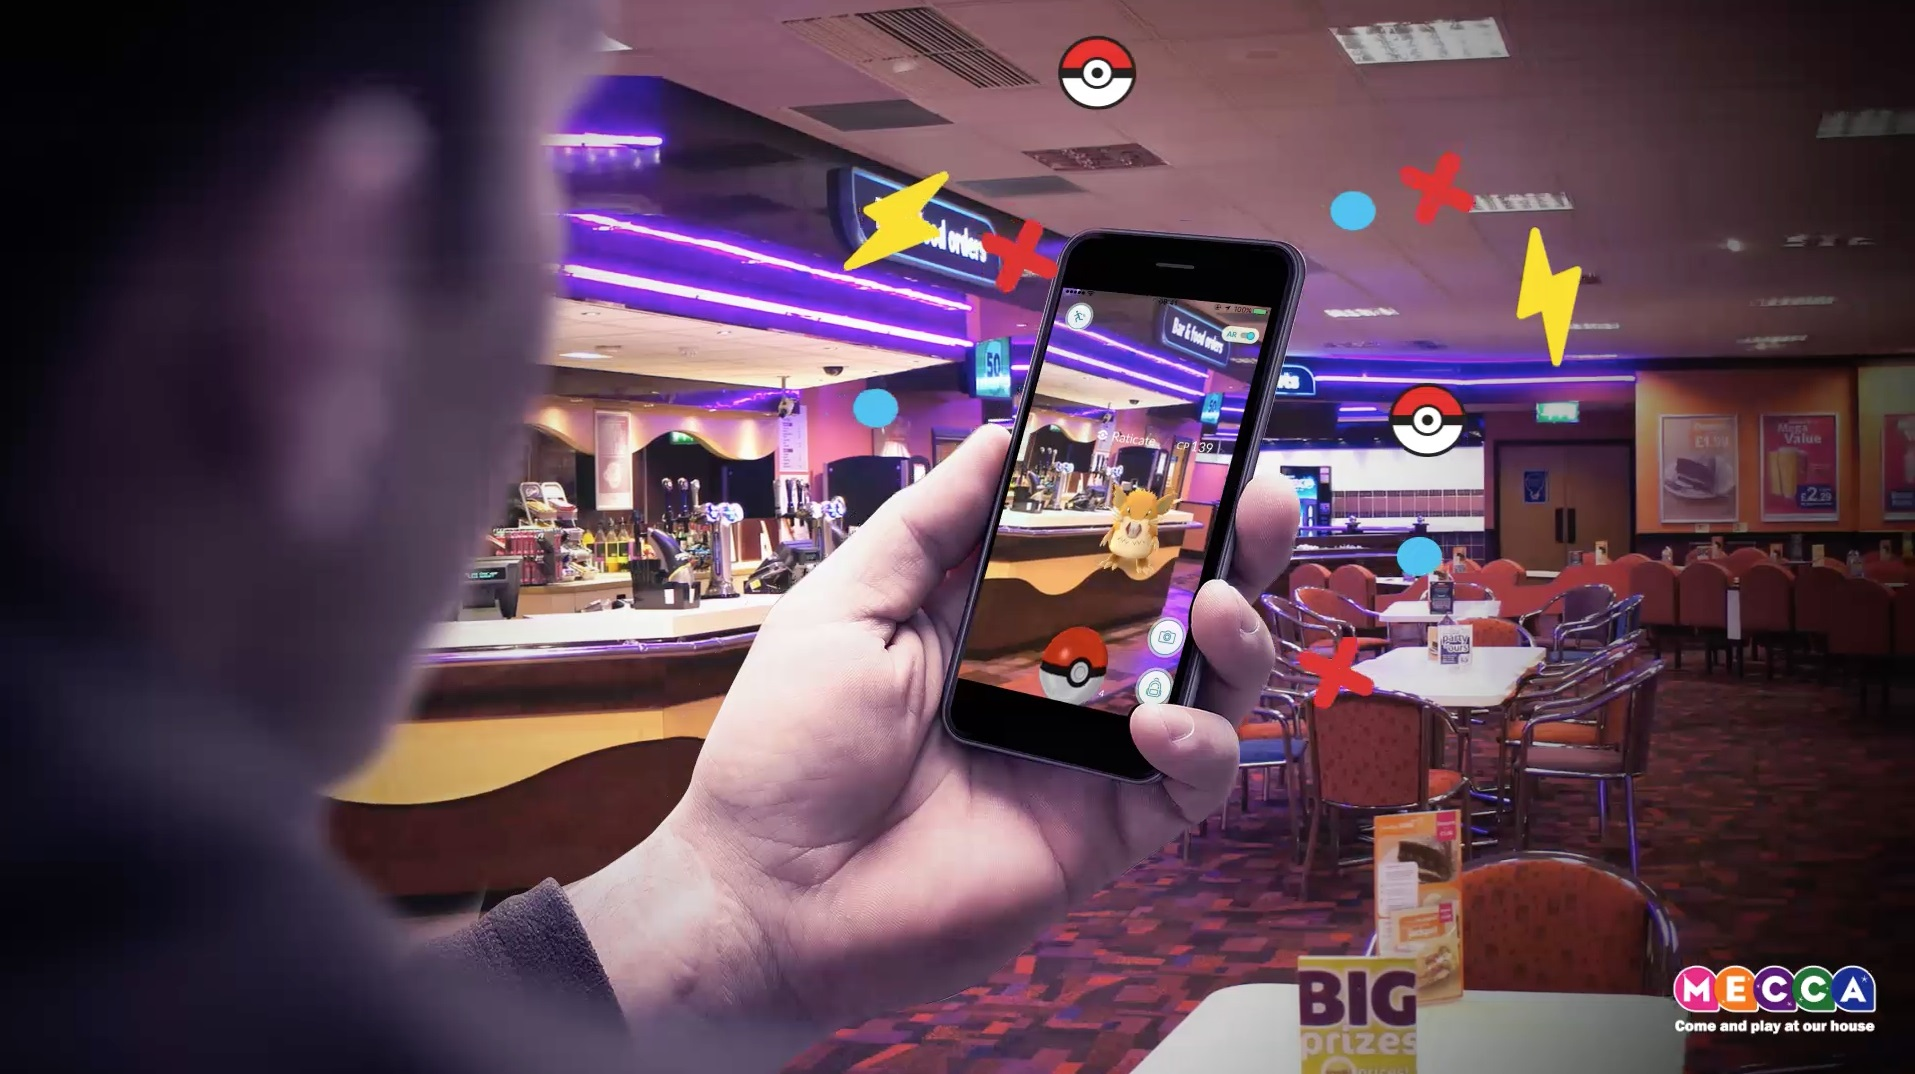 Mecca Bingo Pokémon Campaign Attracts Younger, Male Audience